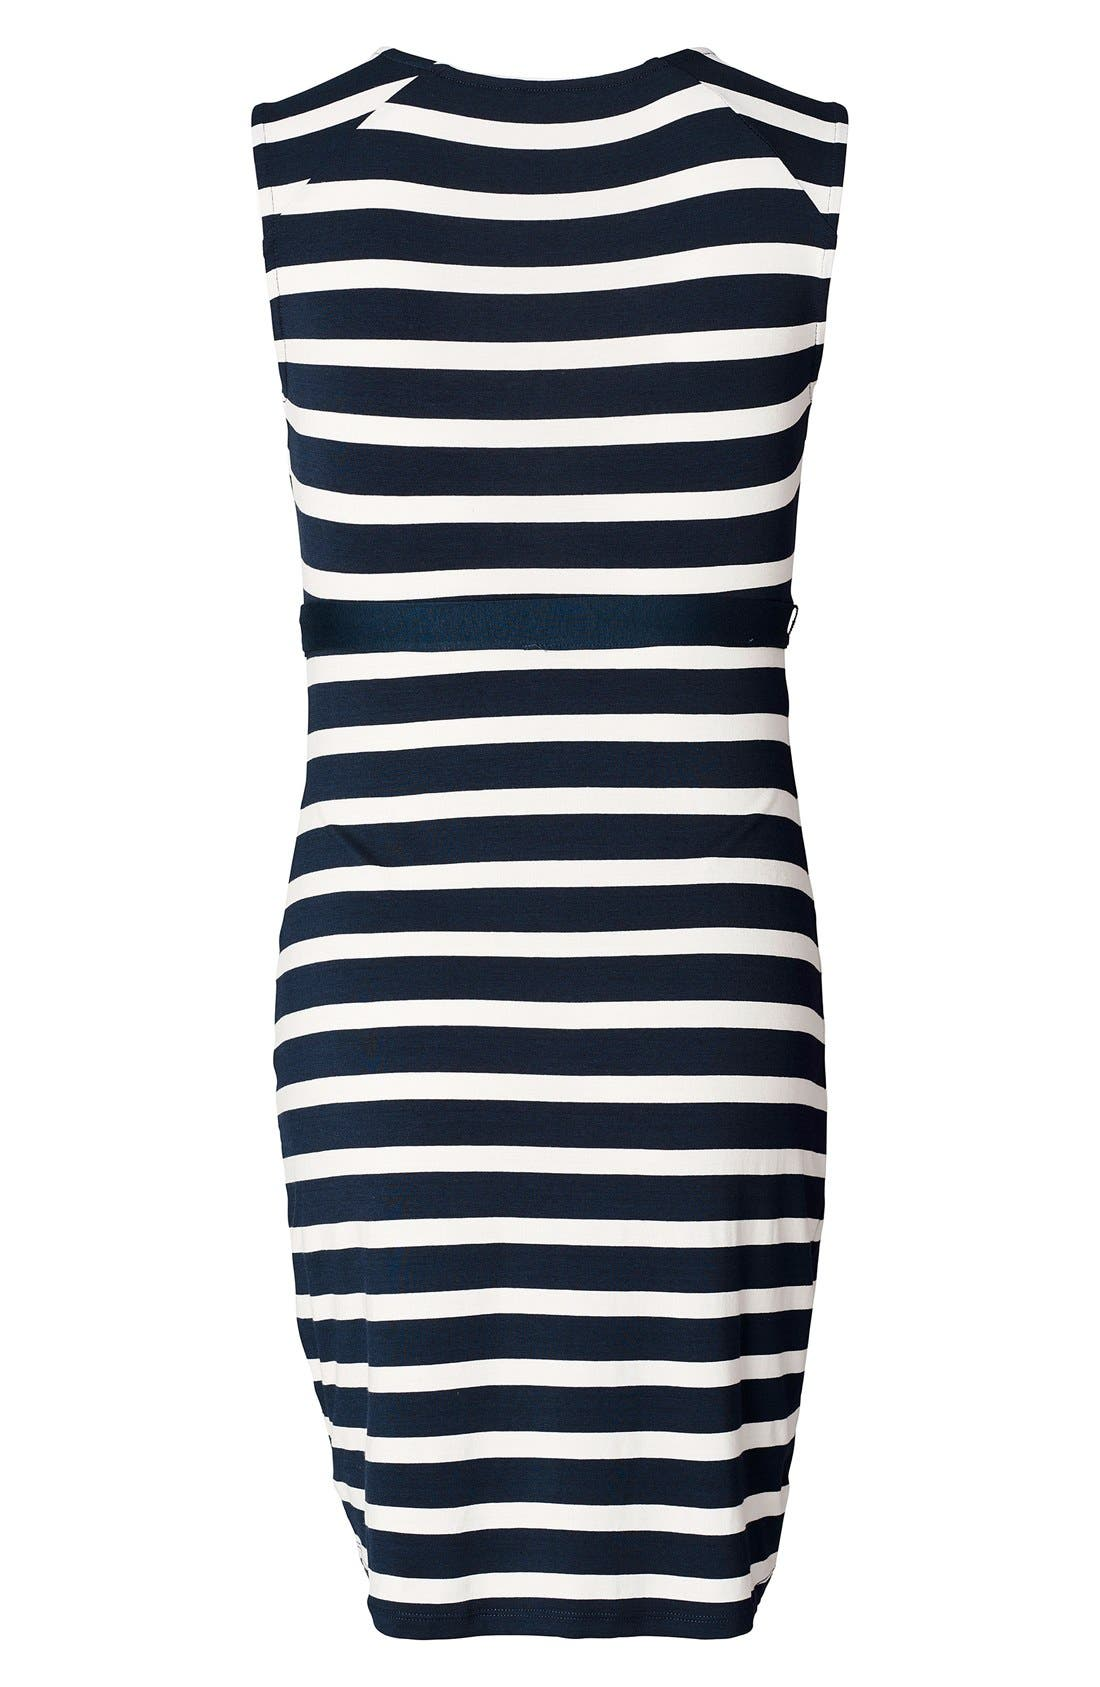 Alternate Image 3  - Noppies 'Lara' Stripe Maternity Dress